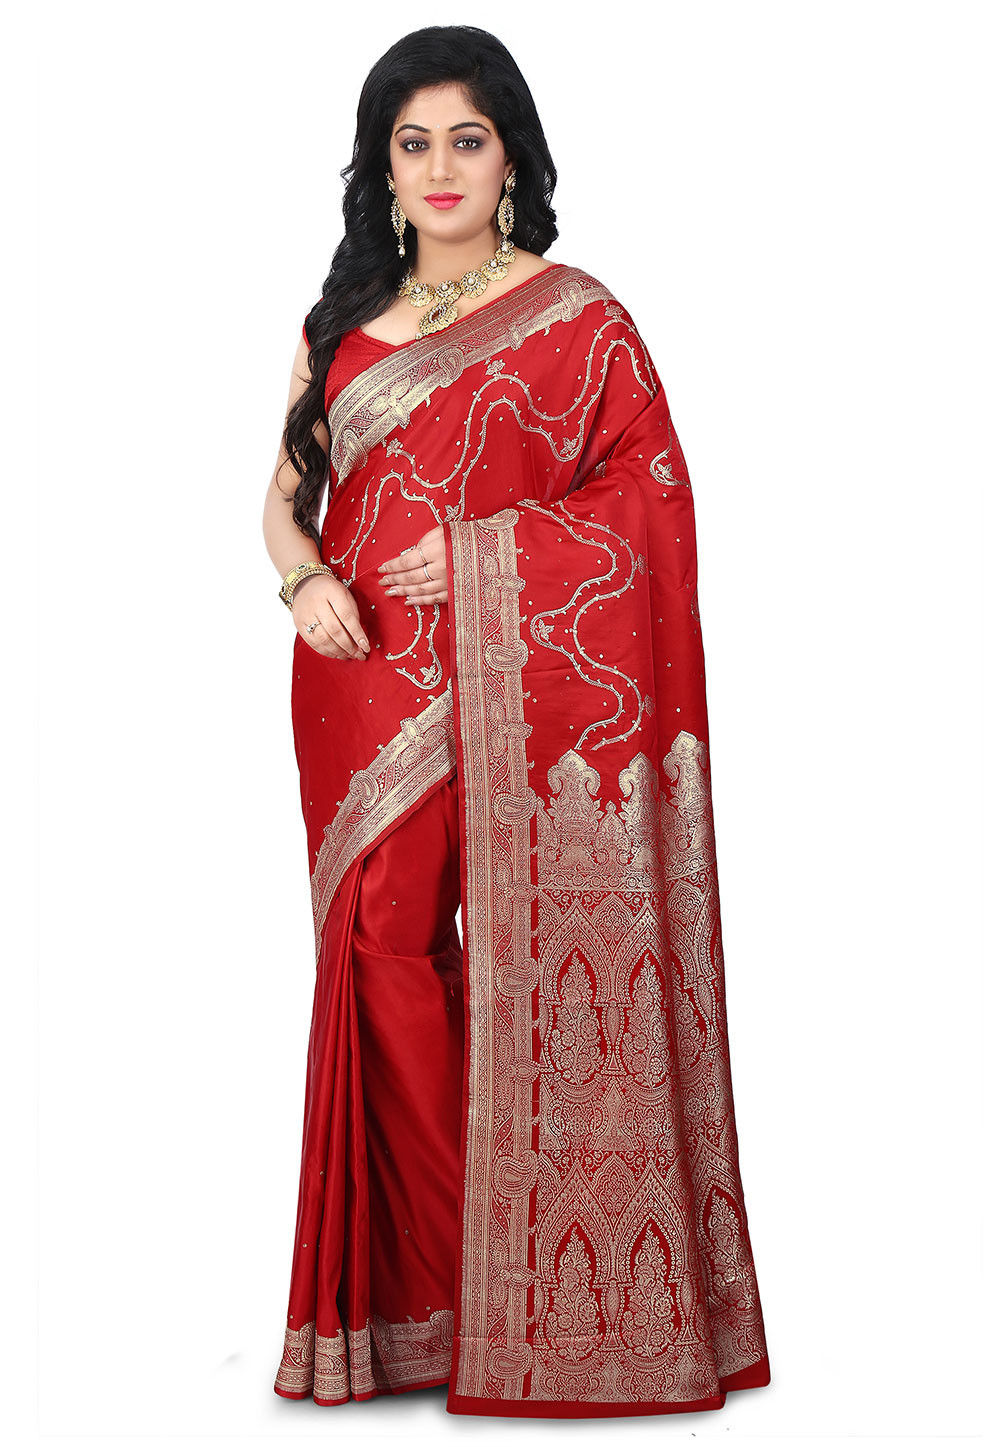 Woven Pure Satin Silk Banarasi Saree in Red